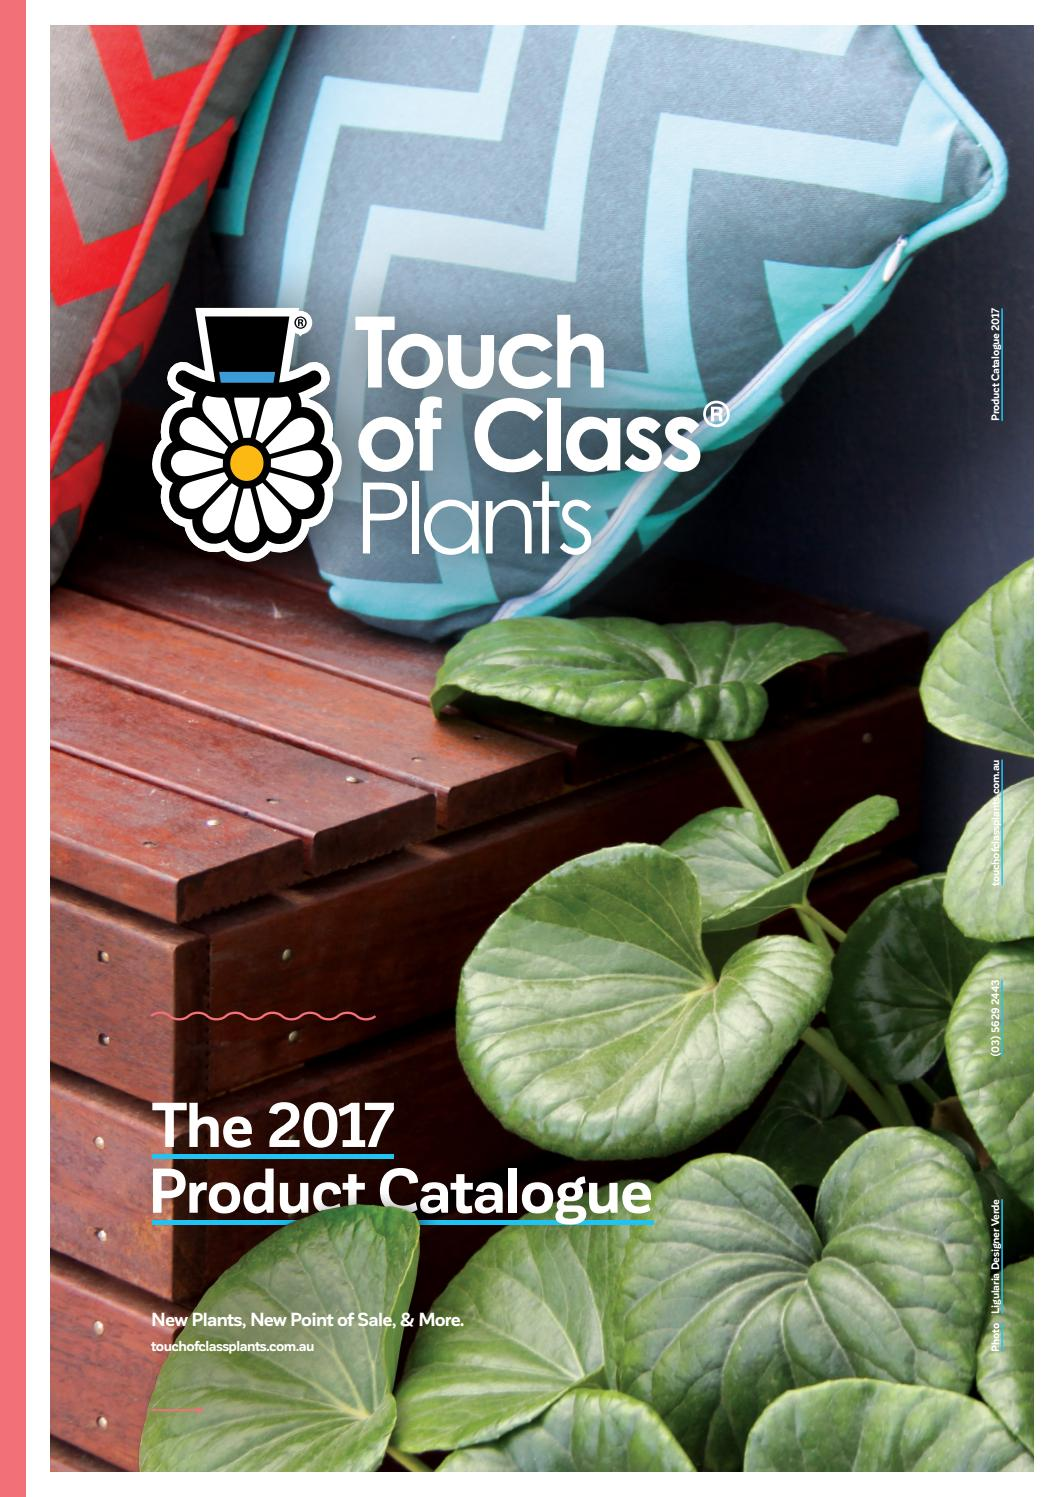 Touch Of Class Plants Product Catalogue 2017 By Touch Of Class